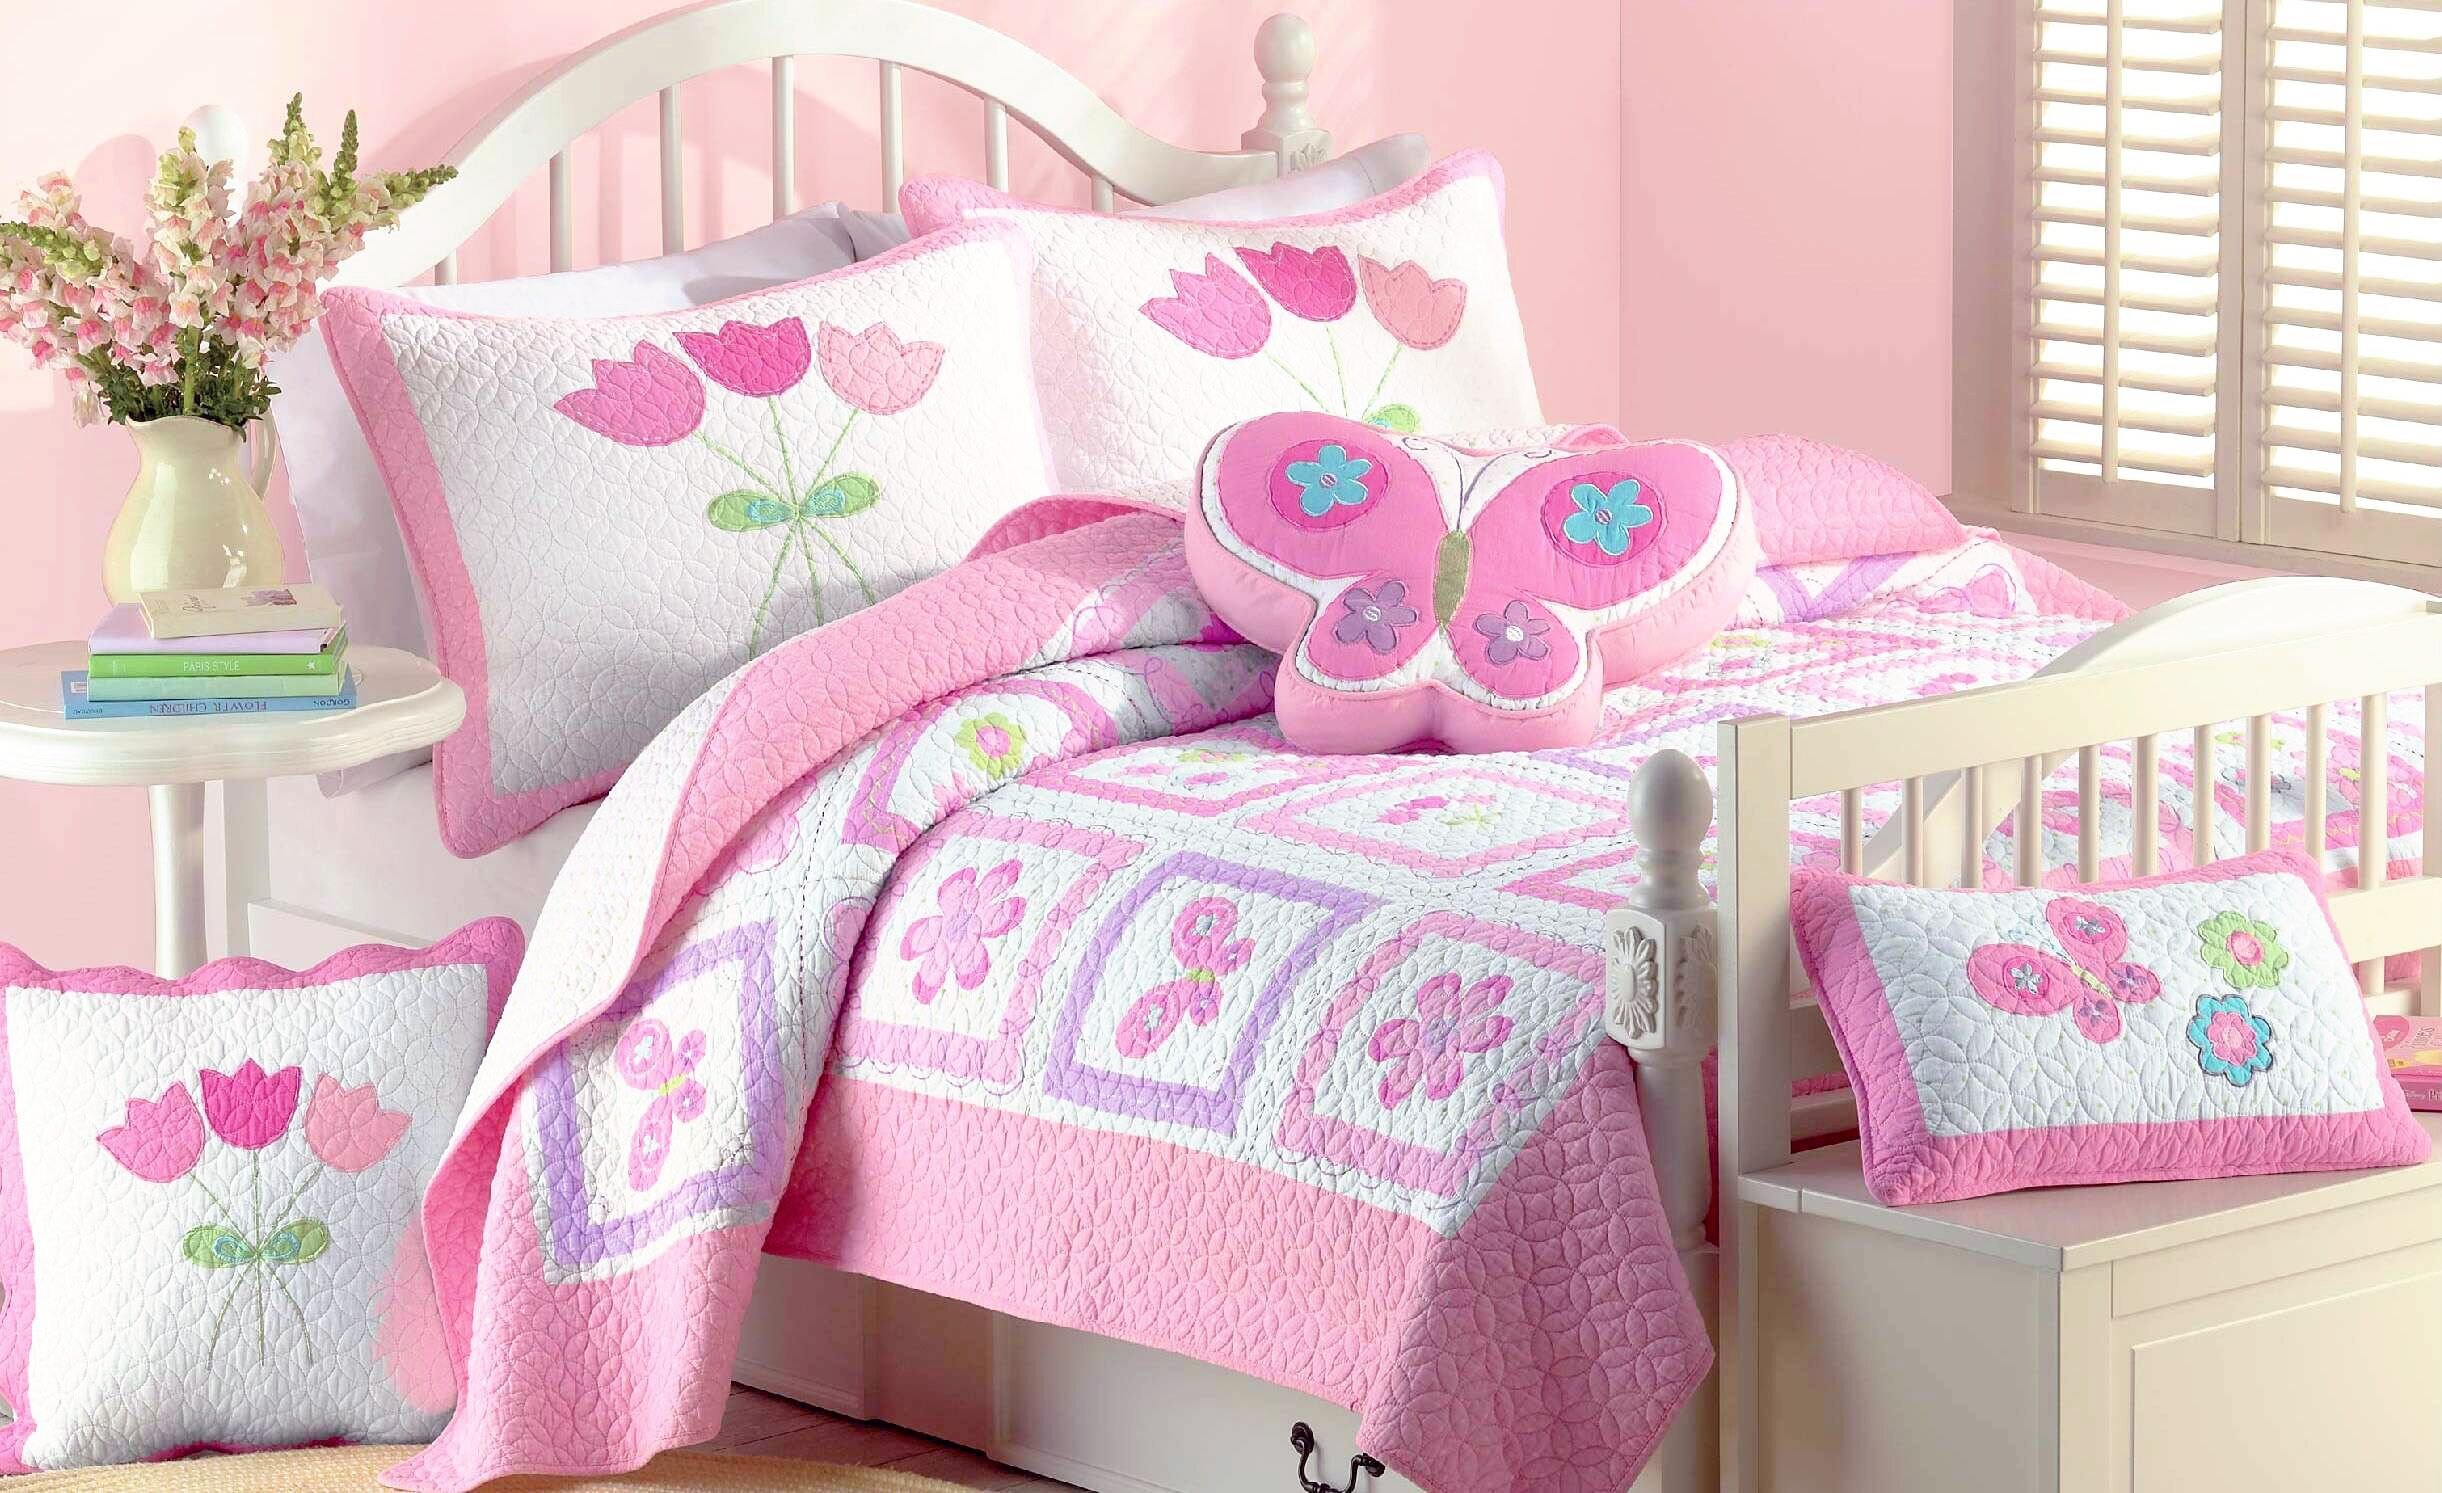 Cozy Line Home Fashions 4 - piece Quilt Bedding Set, Butterfly Tulip Flower Bedspread, Coverlet, 100 % Cotton, Gifts for Girl Kids (Twin - 4pc: 1 quilt + 1 sham + 2 Decorative Pillows) by Cozy Line Home Fashions